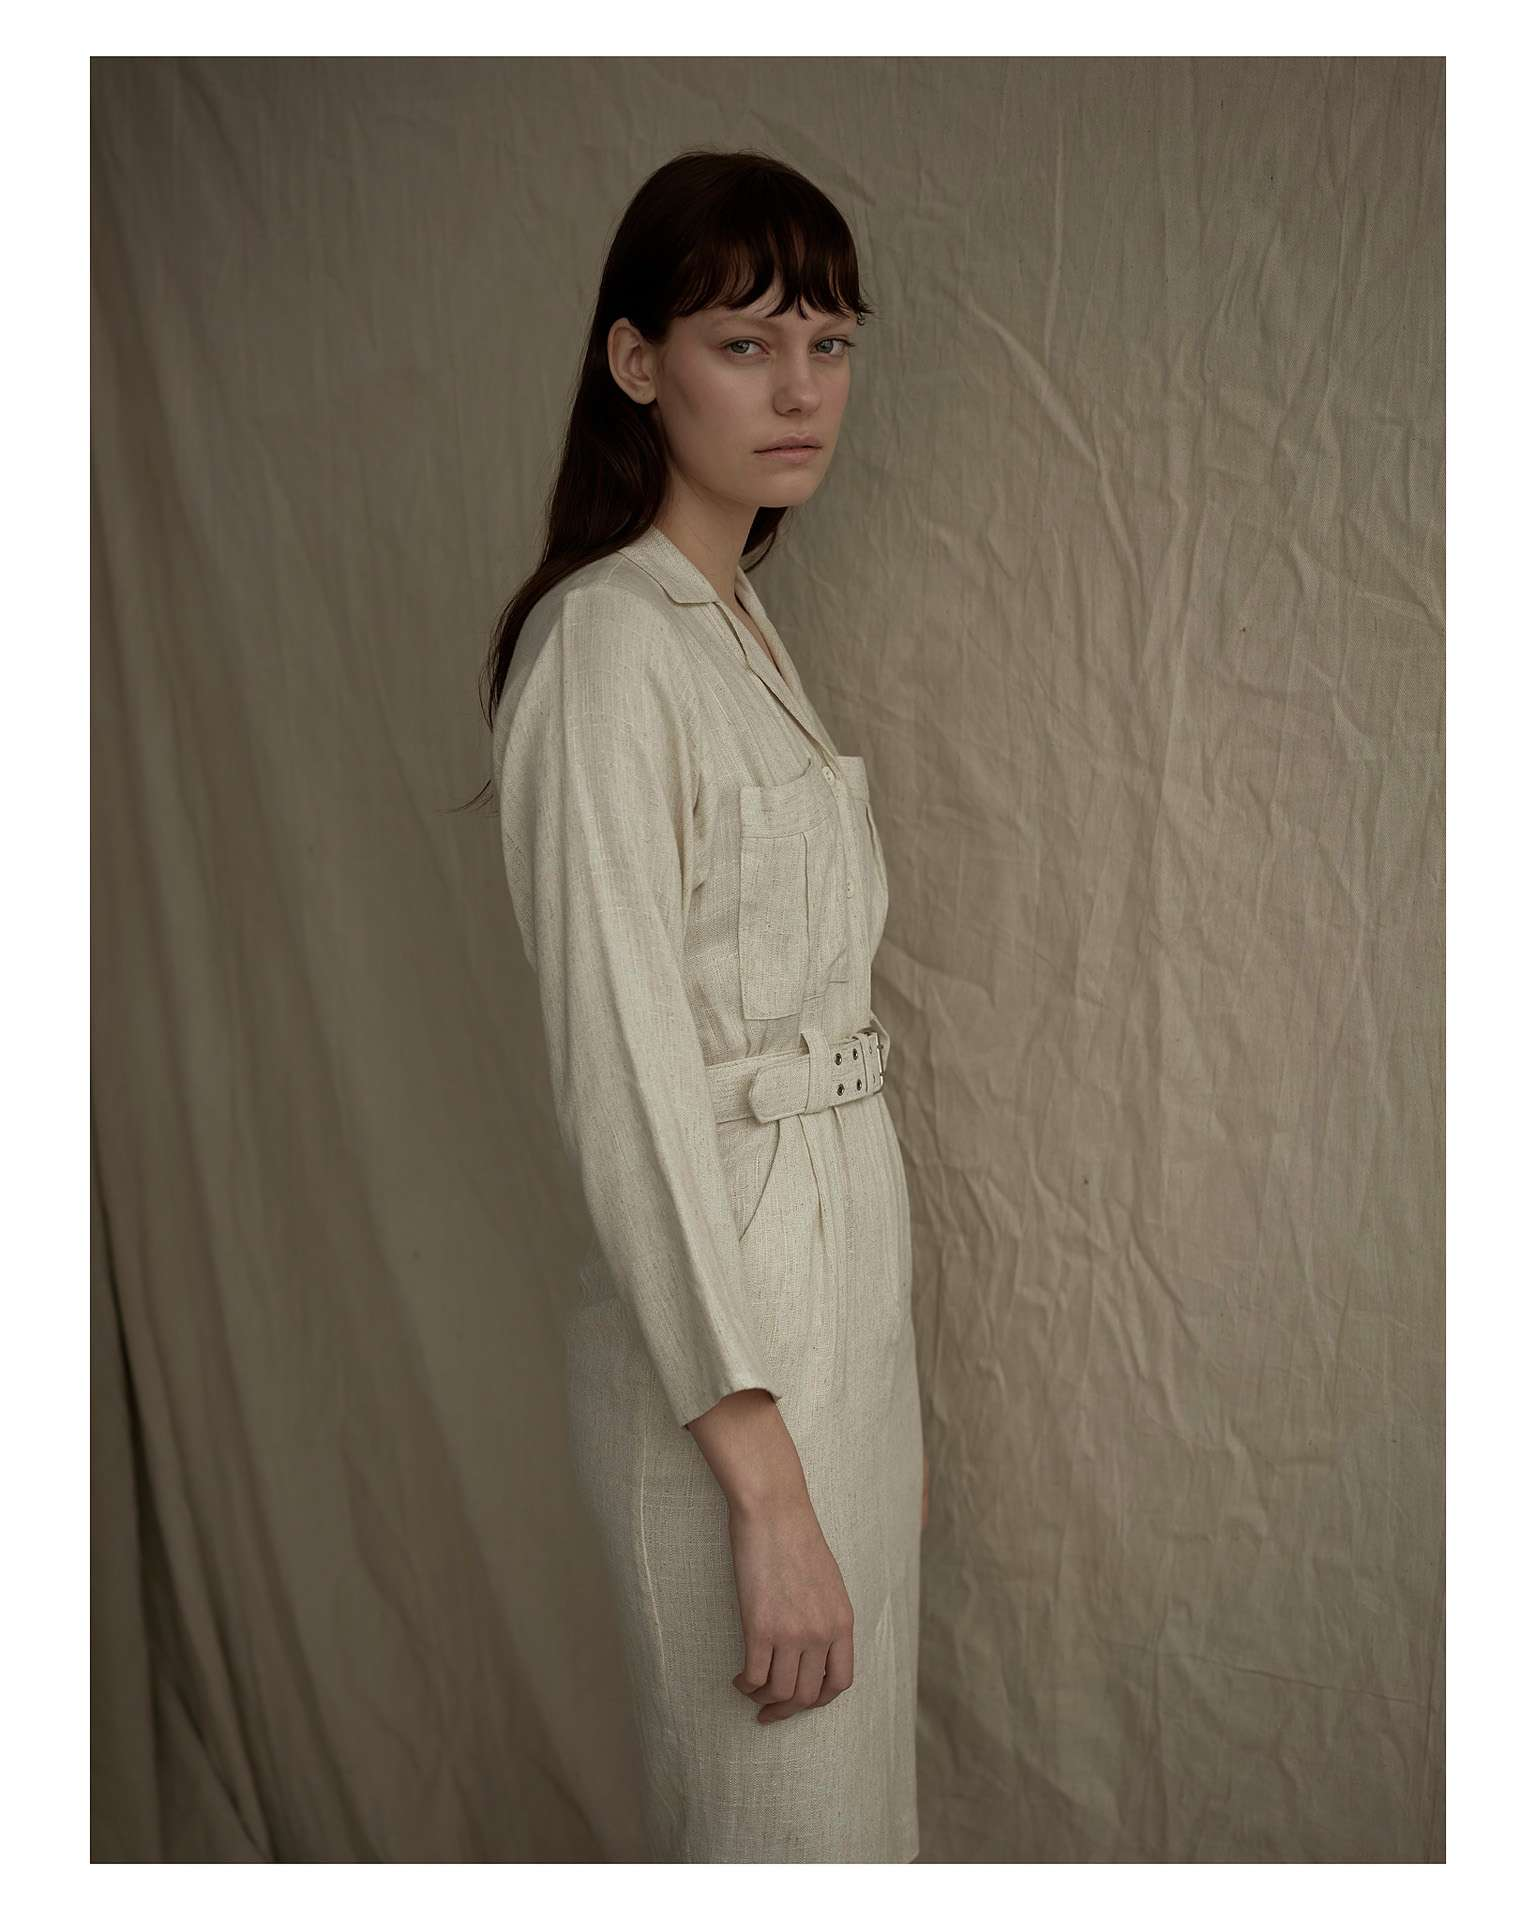 woman dressed in white overall on beige fabric background by Maxyme G Delisle for Mariane